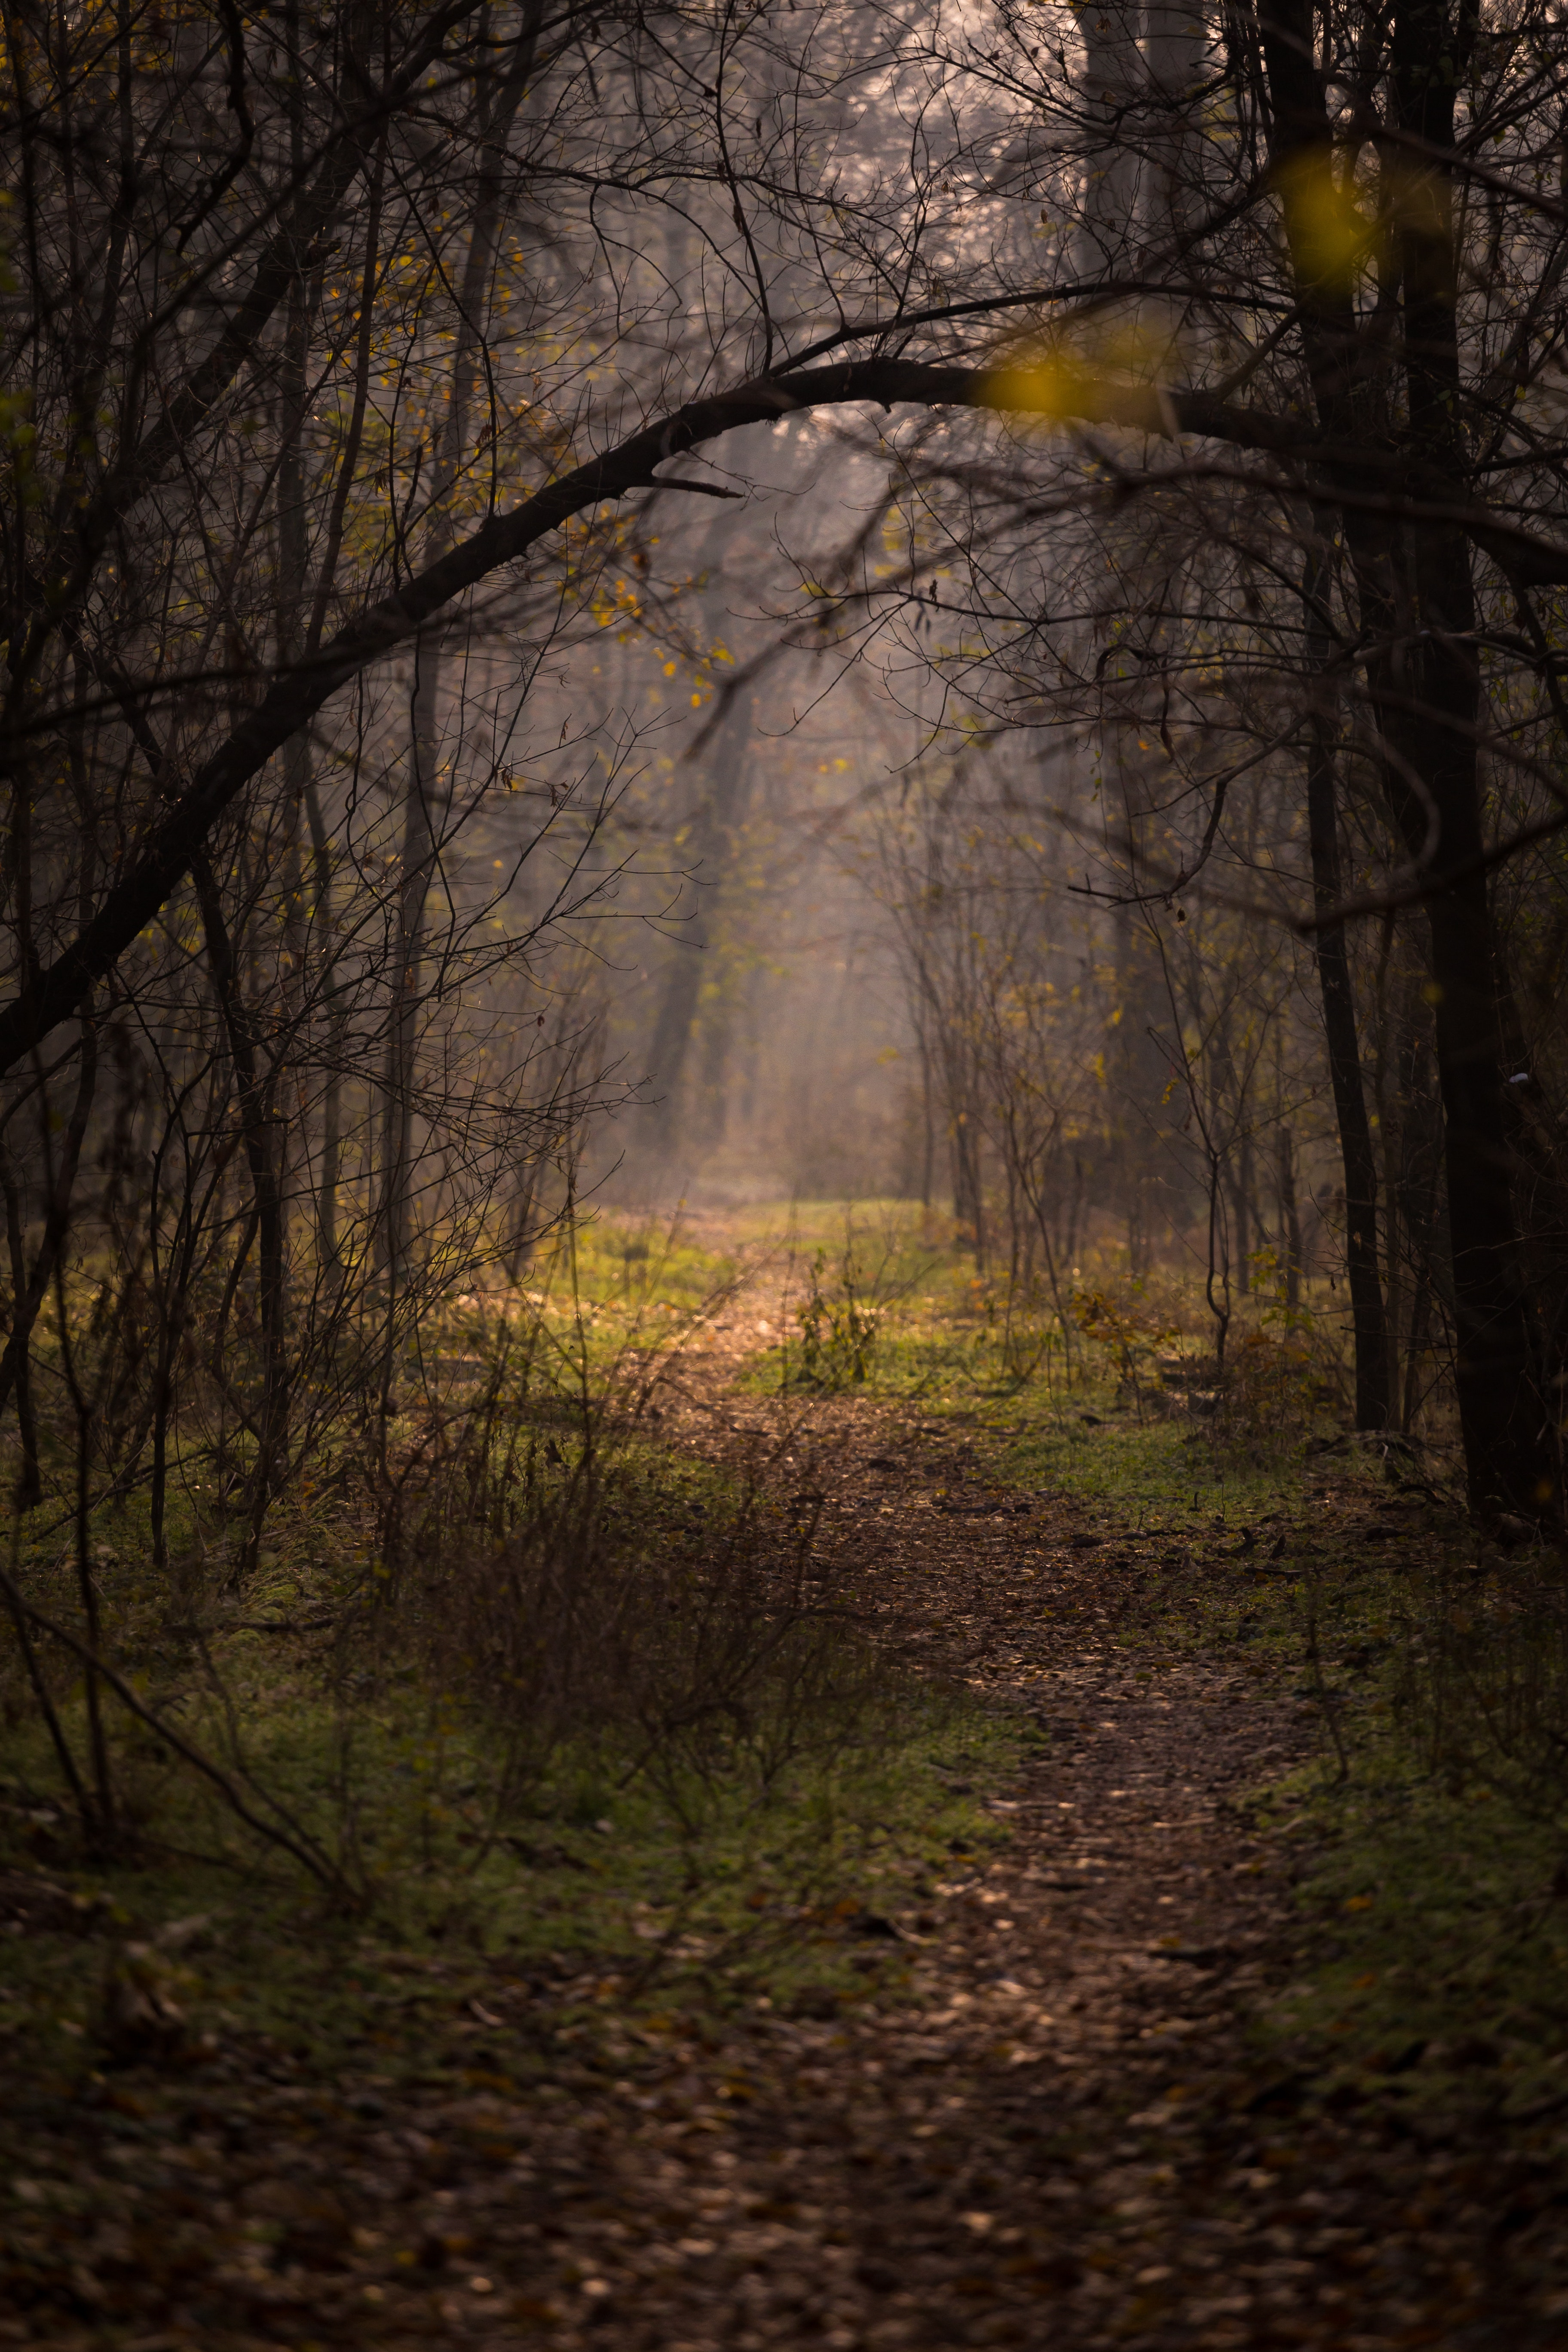 152422 download wallpaper Nature, Trees, Forest, Fog, Branches, Path screensavers and pictures for free